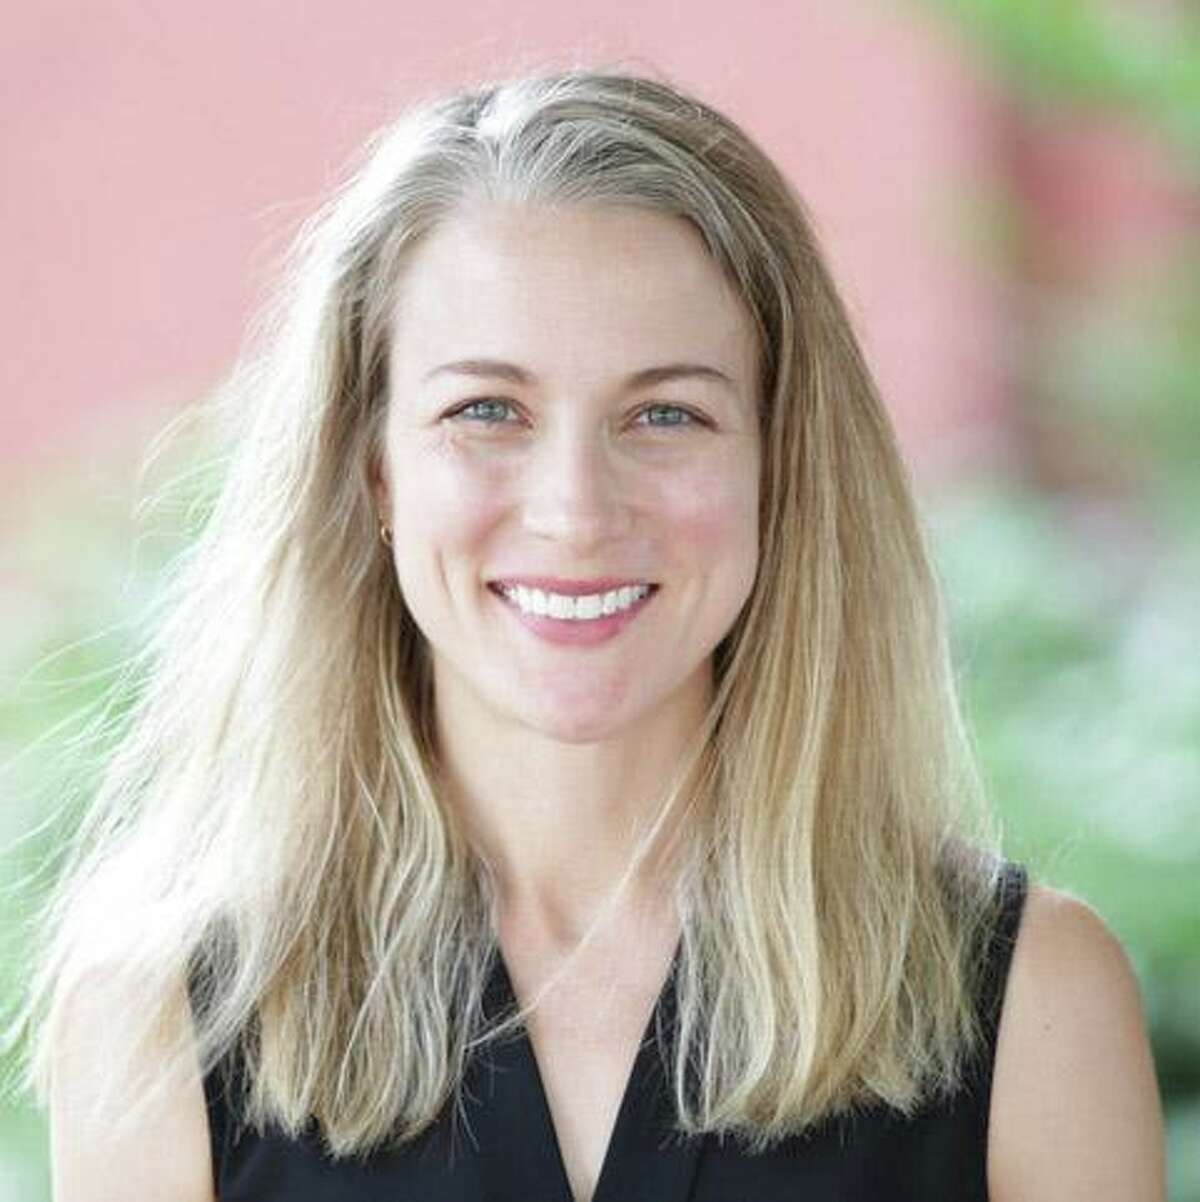 The Rev. Erin Keys will be the next executive director at the The Greenwich Center for Hope and Renewal.